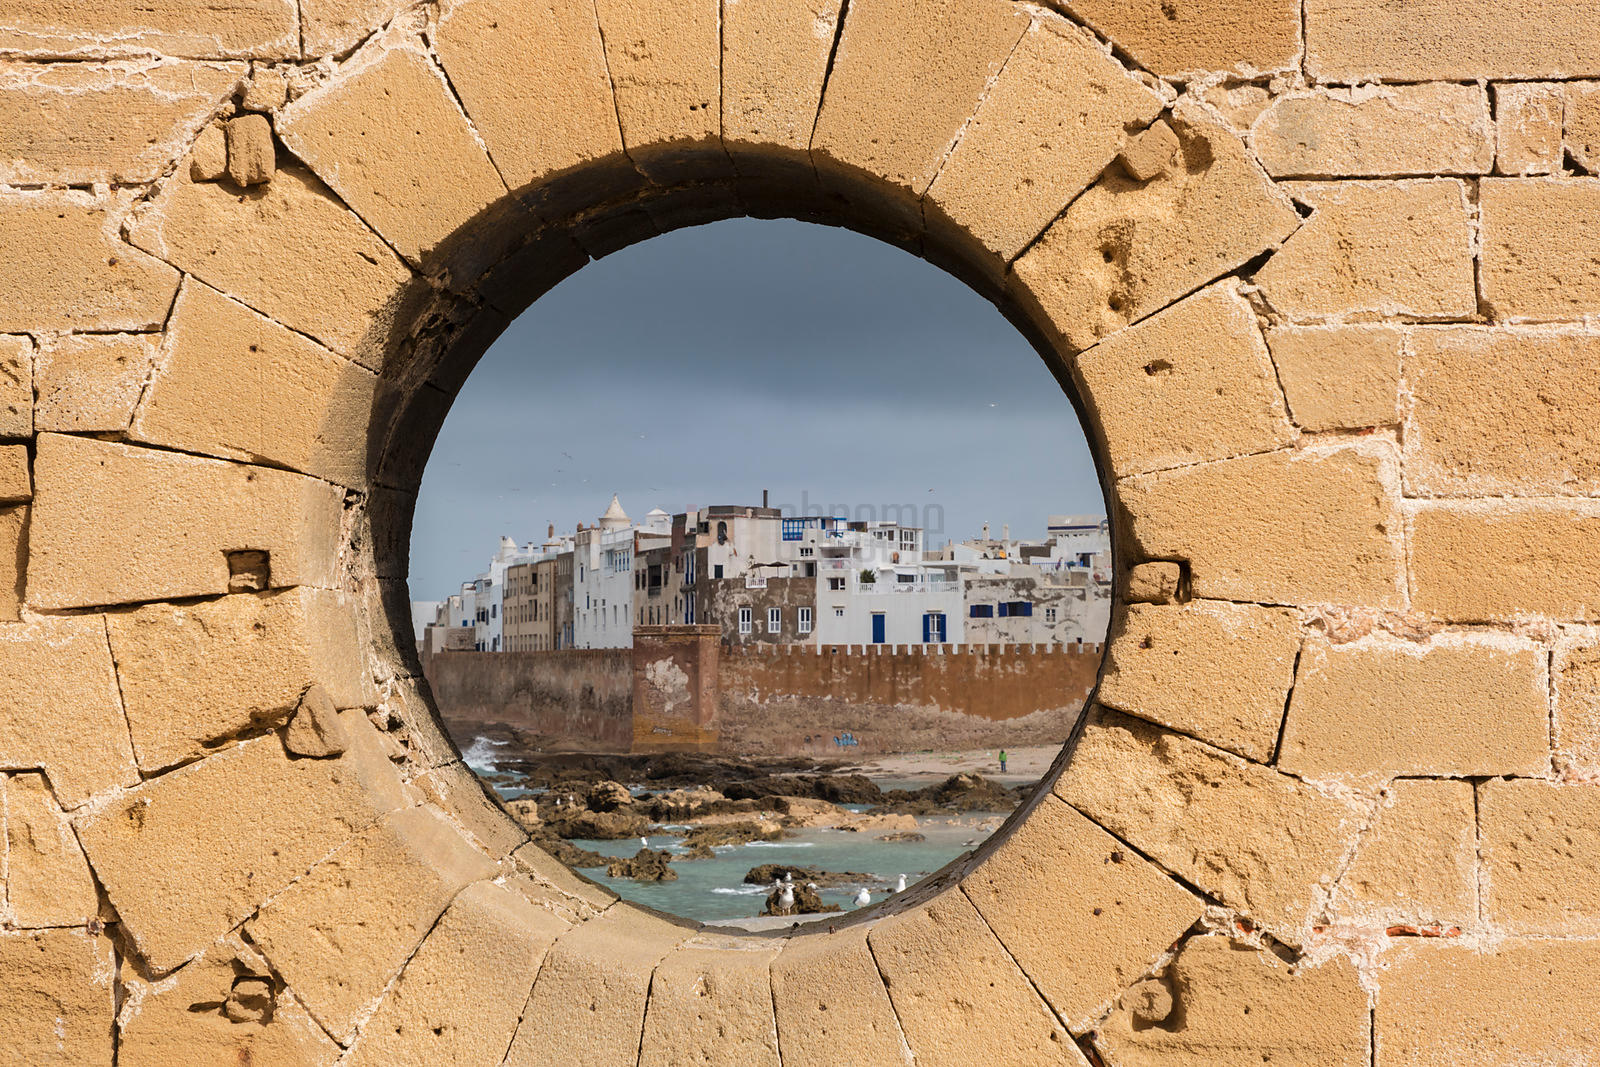 Essaouira Framed Through a Stone Hole in the Fortified City Wall